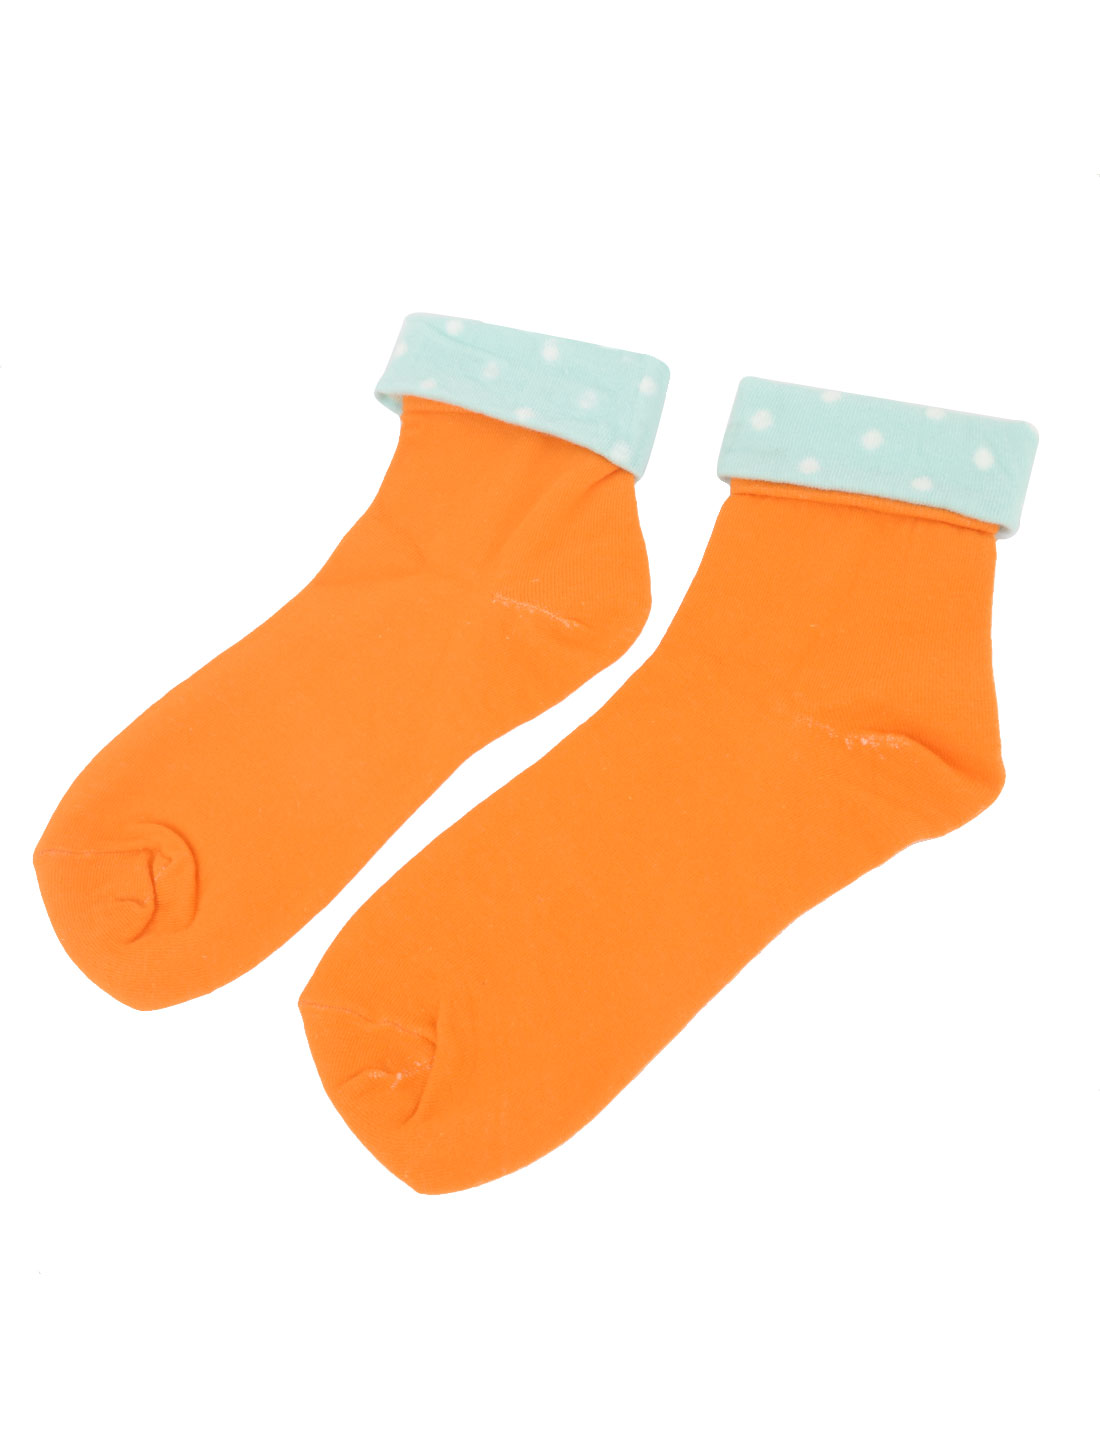 Pair Spotty Dots Pattern Elastic Cuff Warm Ankle High Socks Orange Cyan for Lady